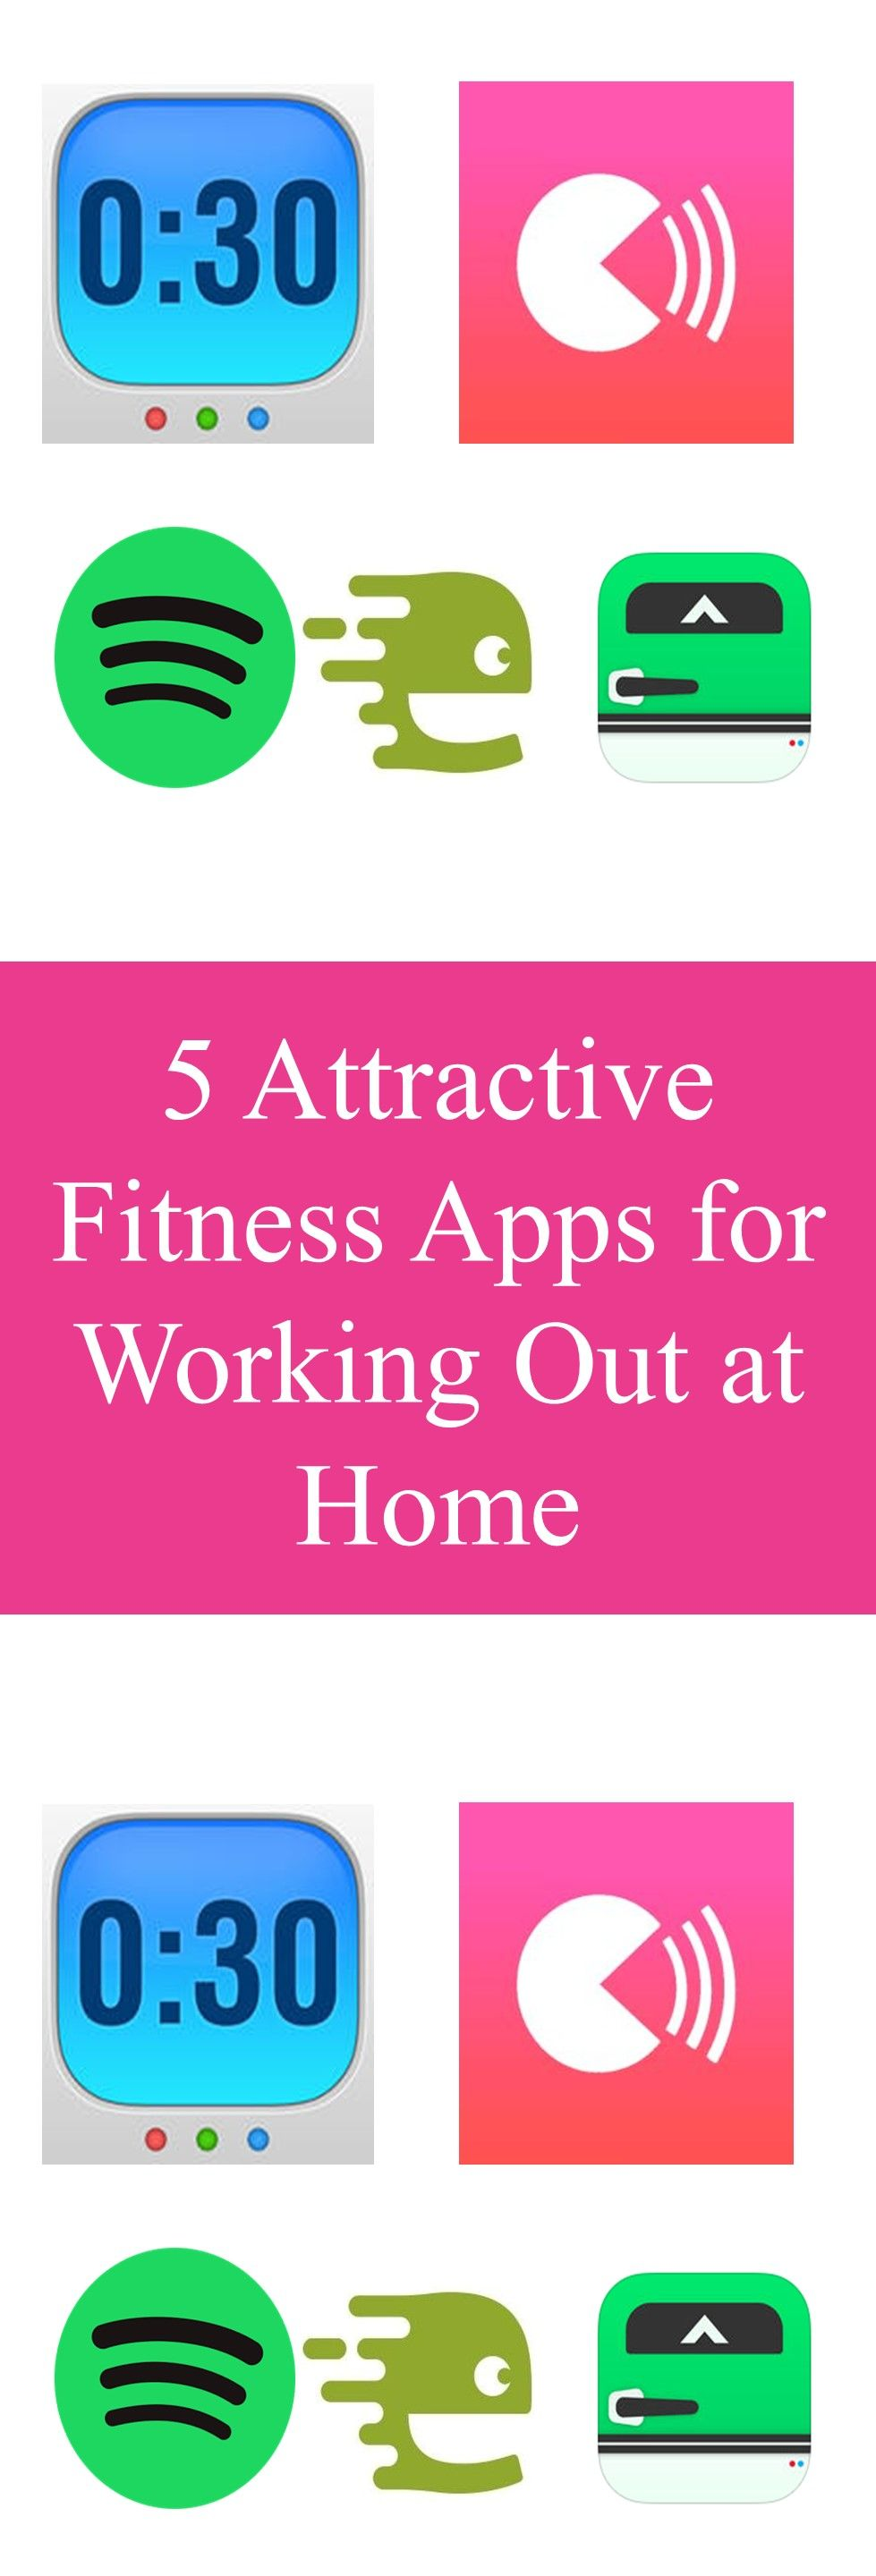 5 Attractive Fitness Apps for Working Out at Home Fun